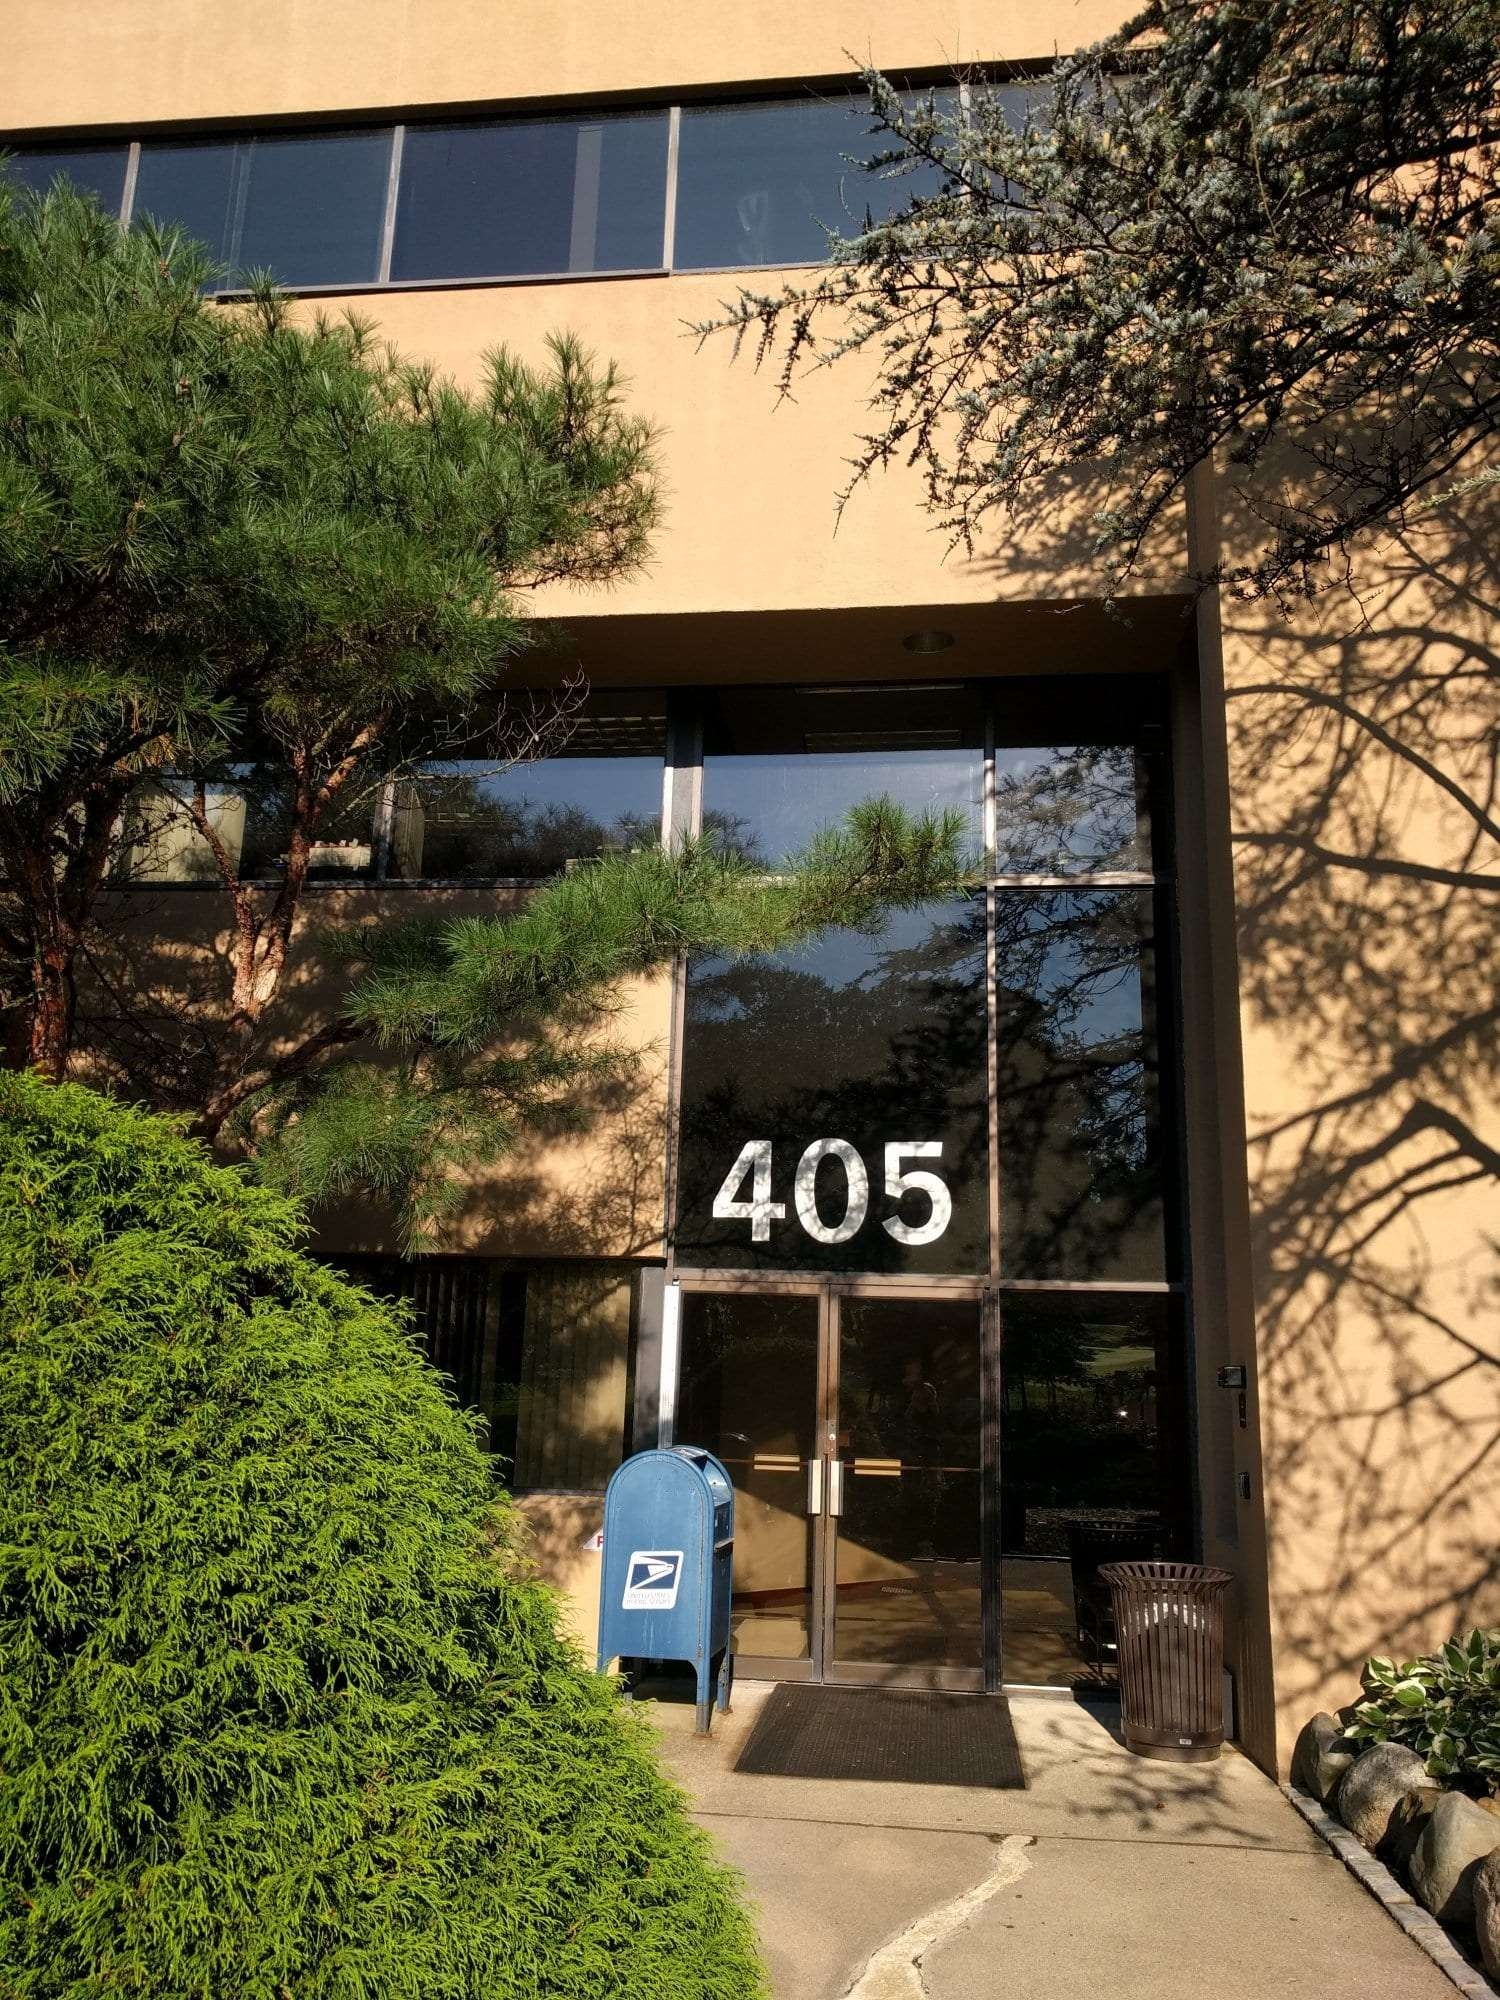 This is an image of the front entrance to our physical therapy clinic in West Orange New Jersey.